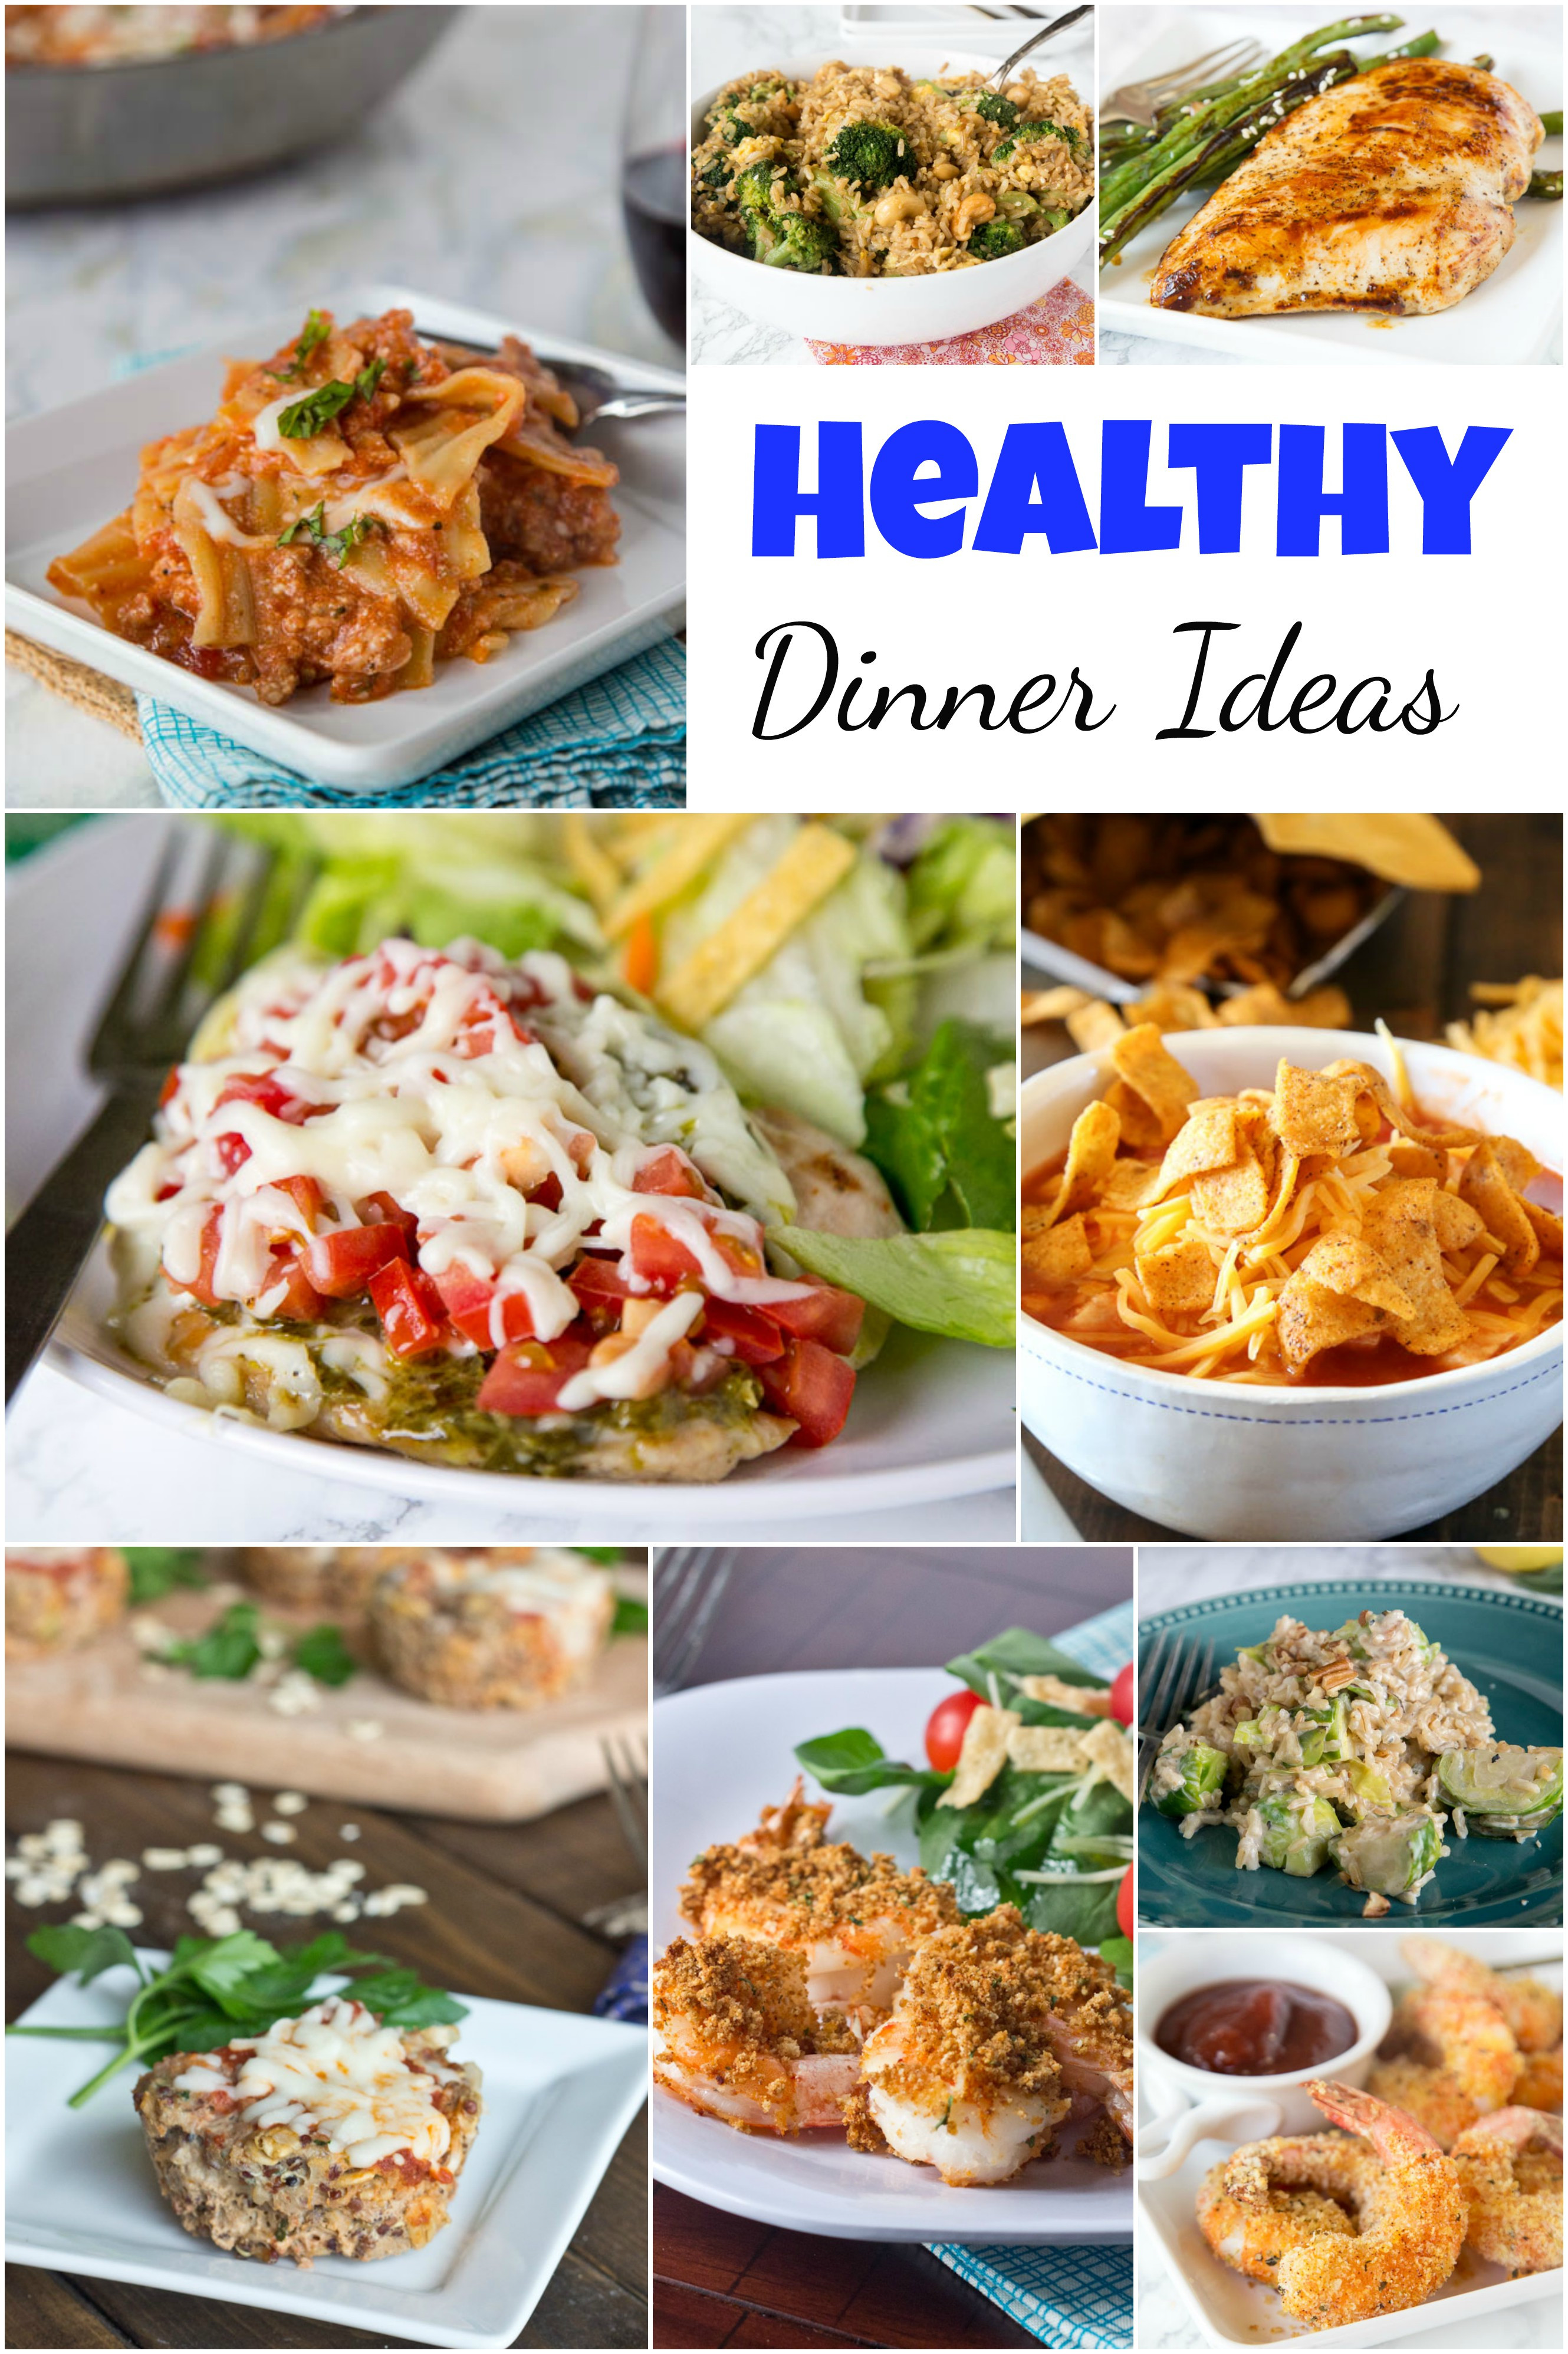 Healthy Meal Ideas For Dinner  Healthy Dinner Ideas Dinners Dishes and Desserts